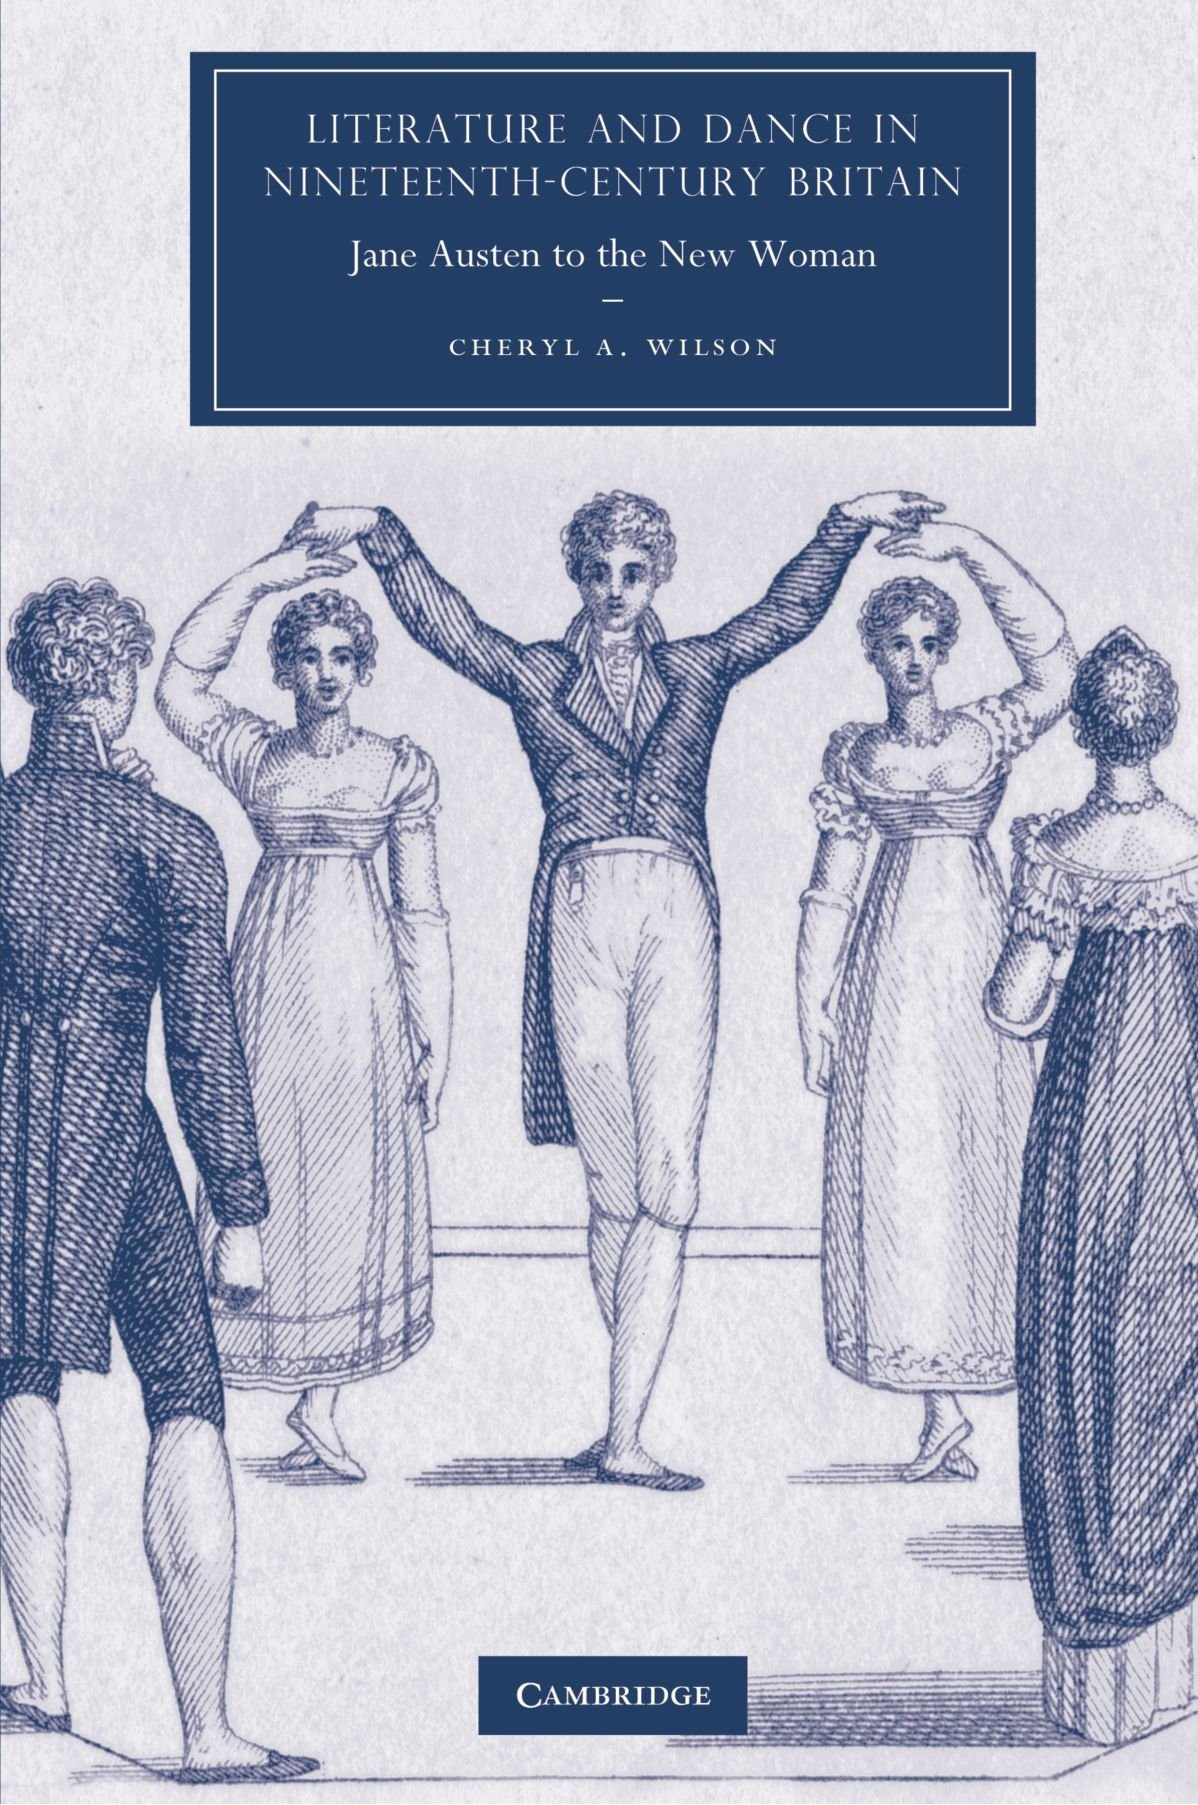 Download Literature and Dance in Nineteenth-Century Britain: Jane Austen to the New Woman (Cambridge Studies in Nineteenth-Century Literature and Culture) PDF